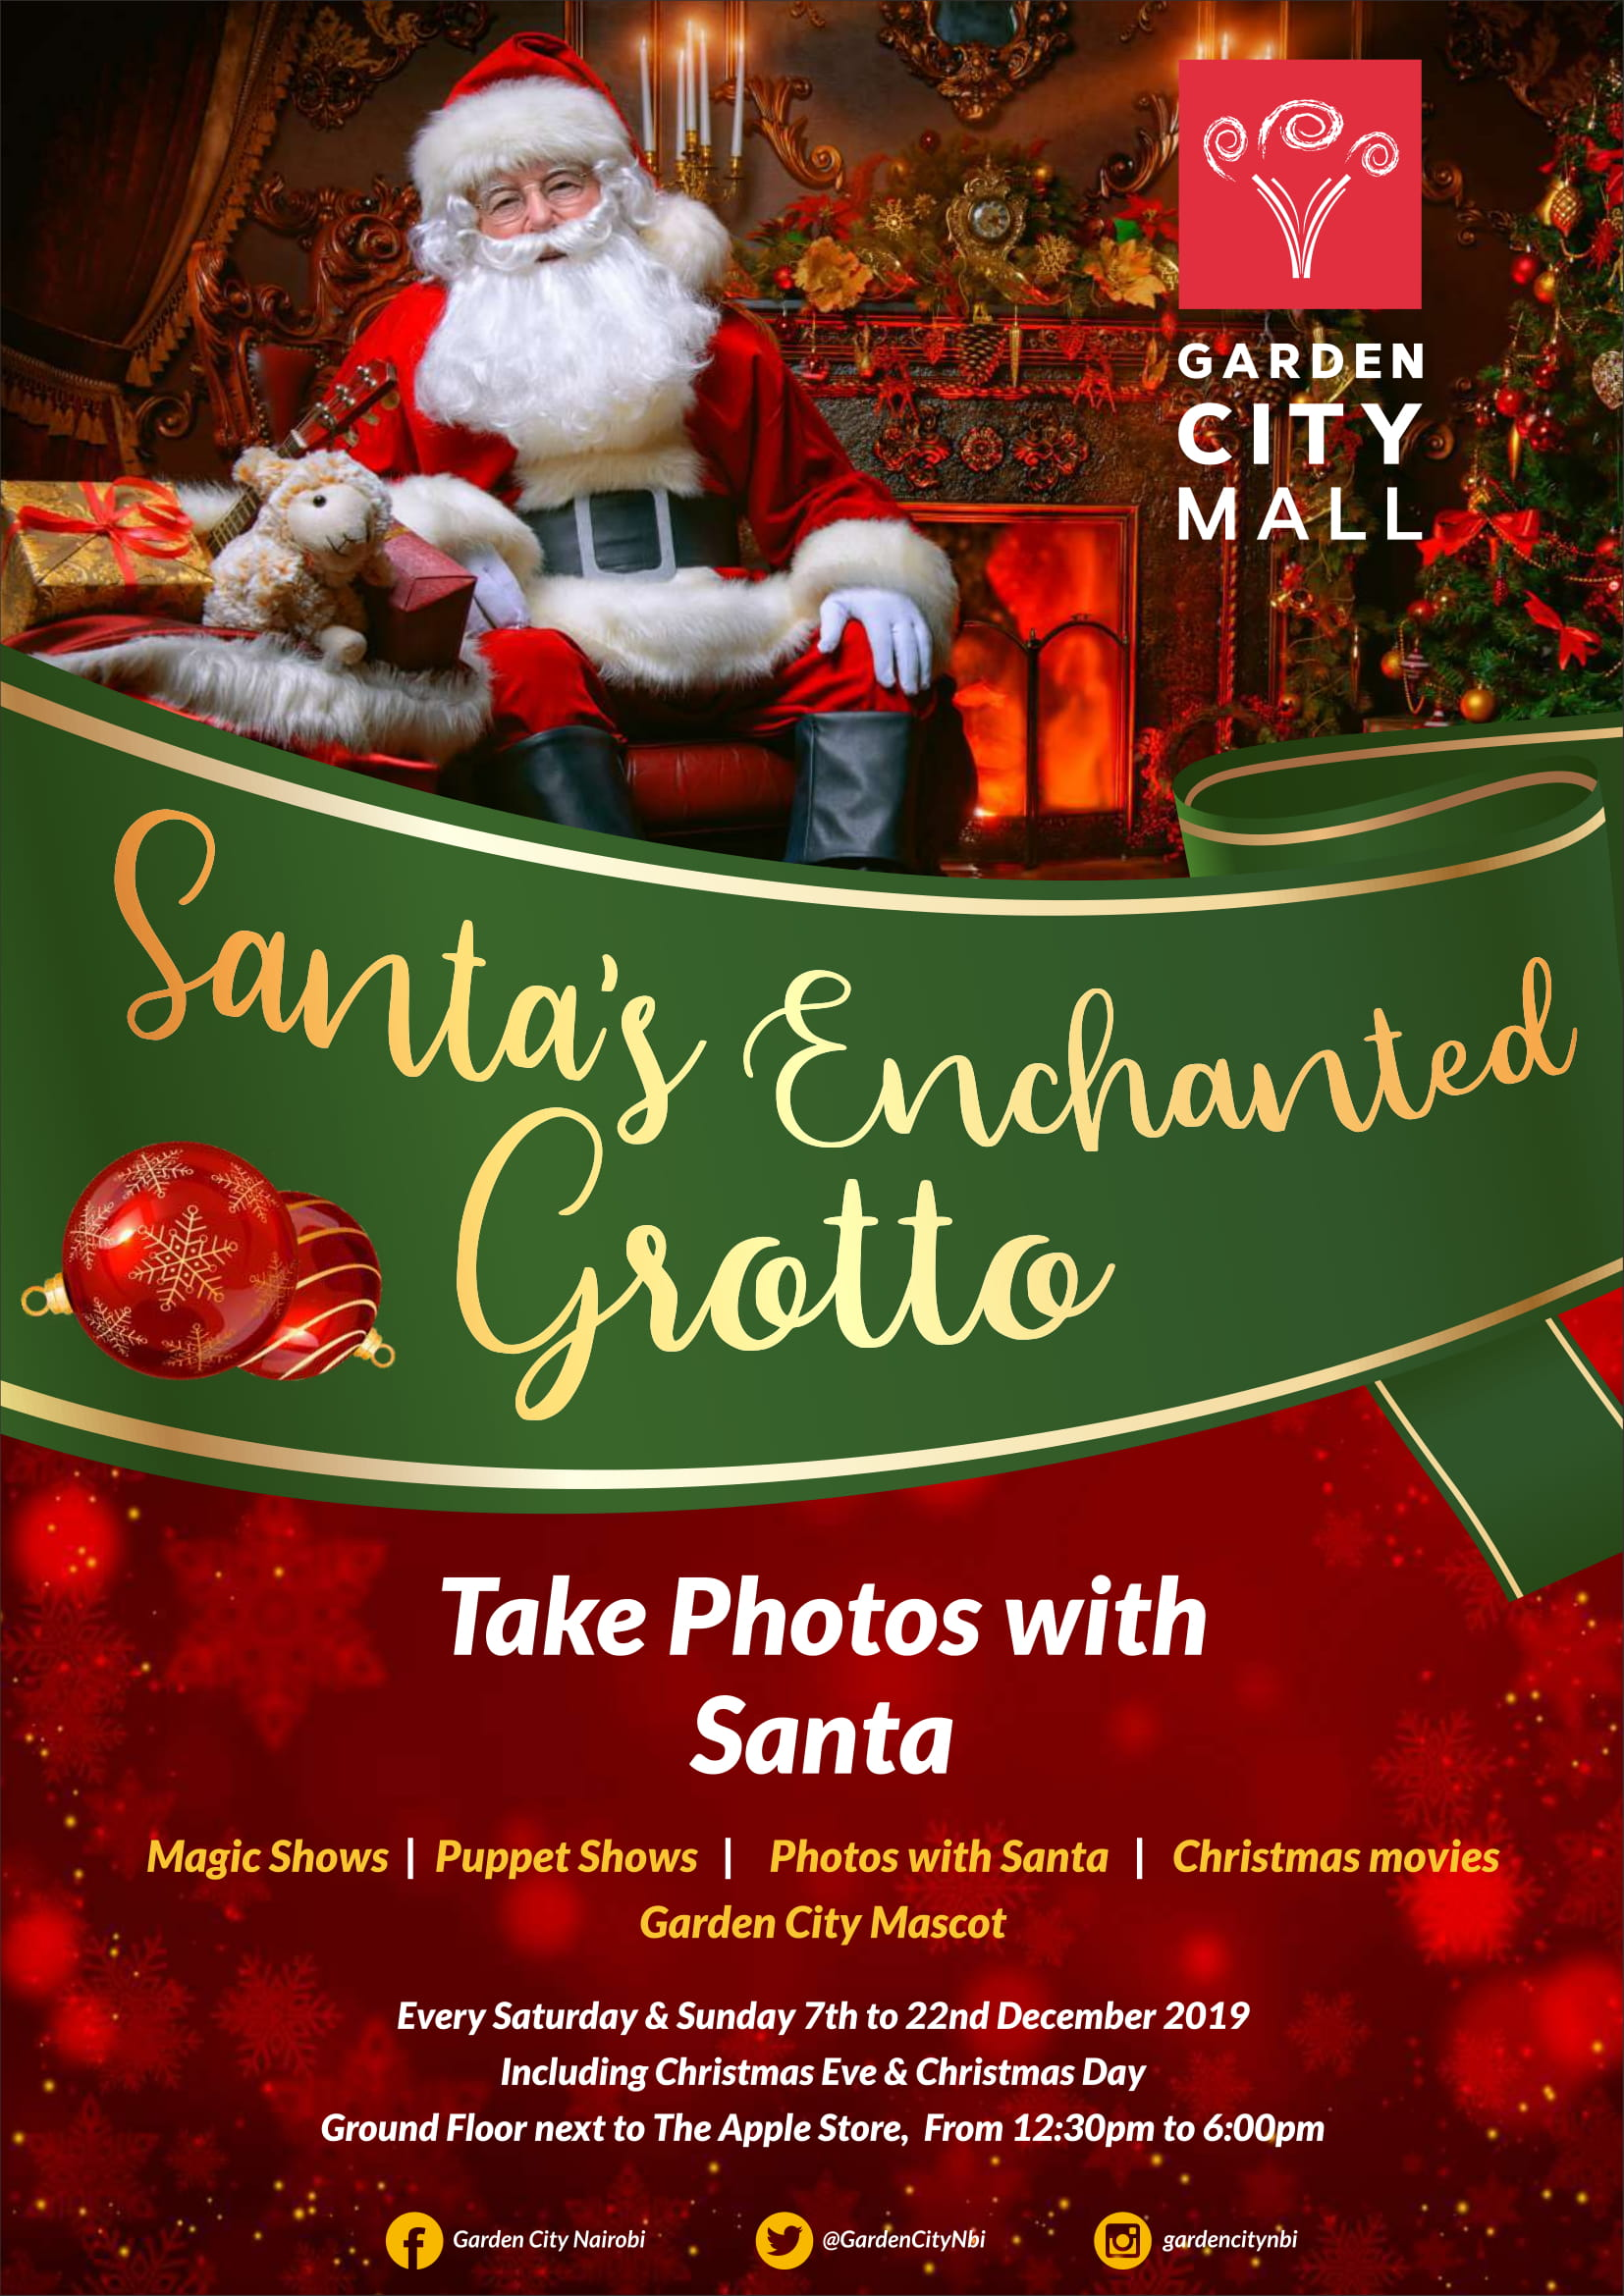 Santa's Enchanted Grotto